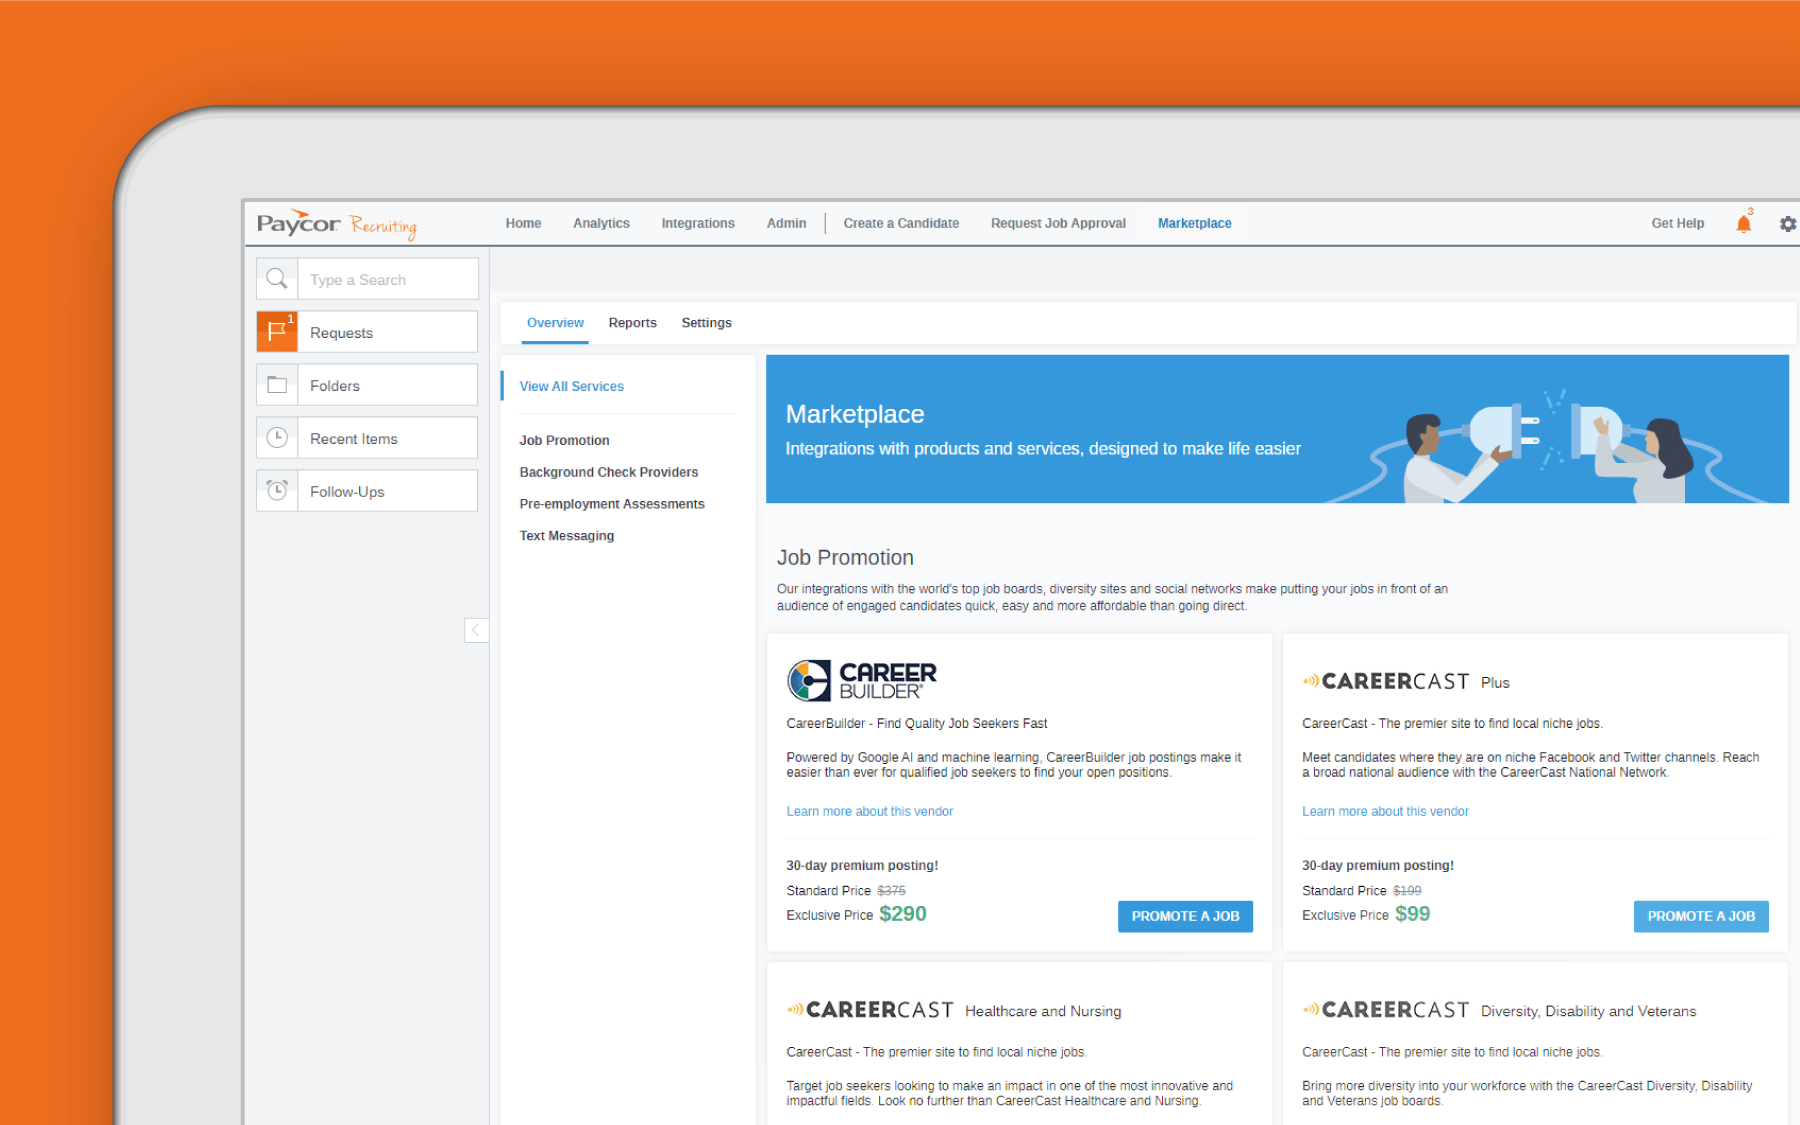 Corner of tablet showing Paycor recruiting page against orange background